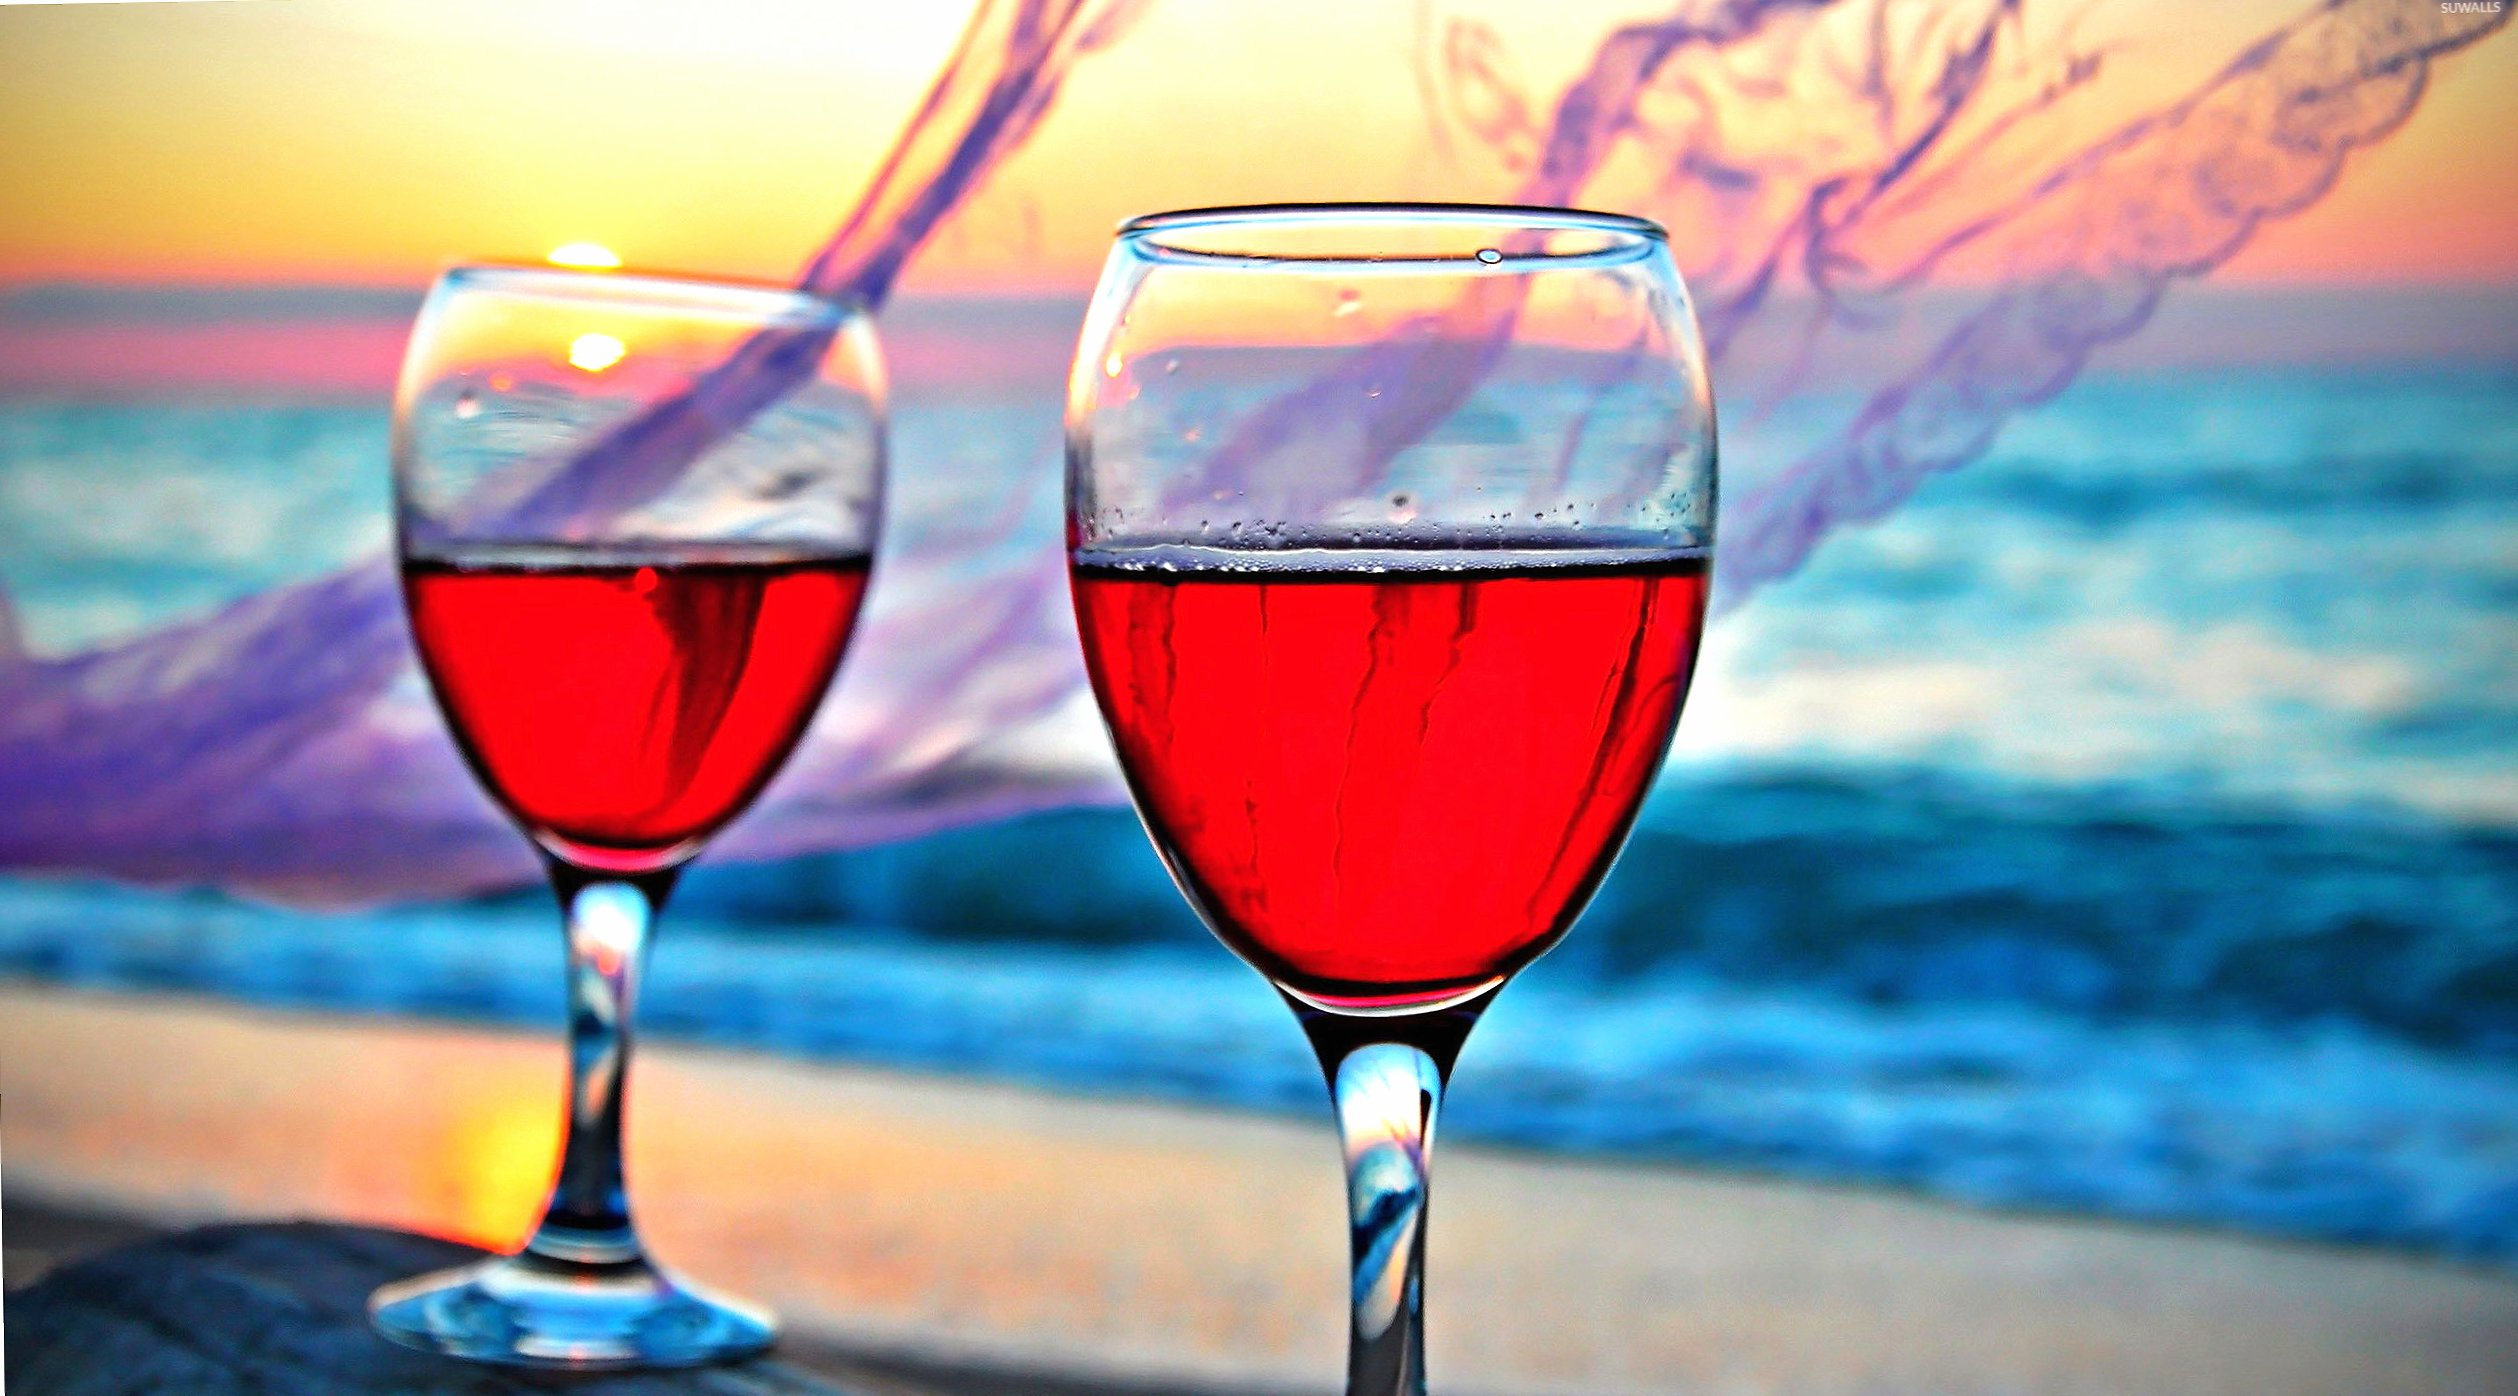 Rose wine in the glasses wallpapers HD quality